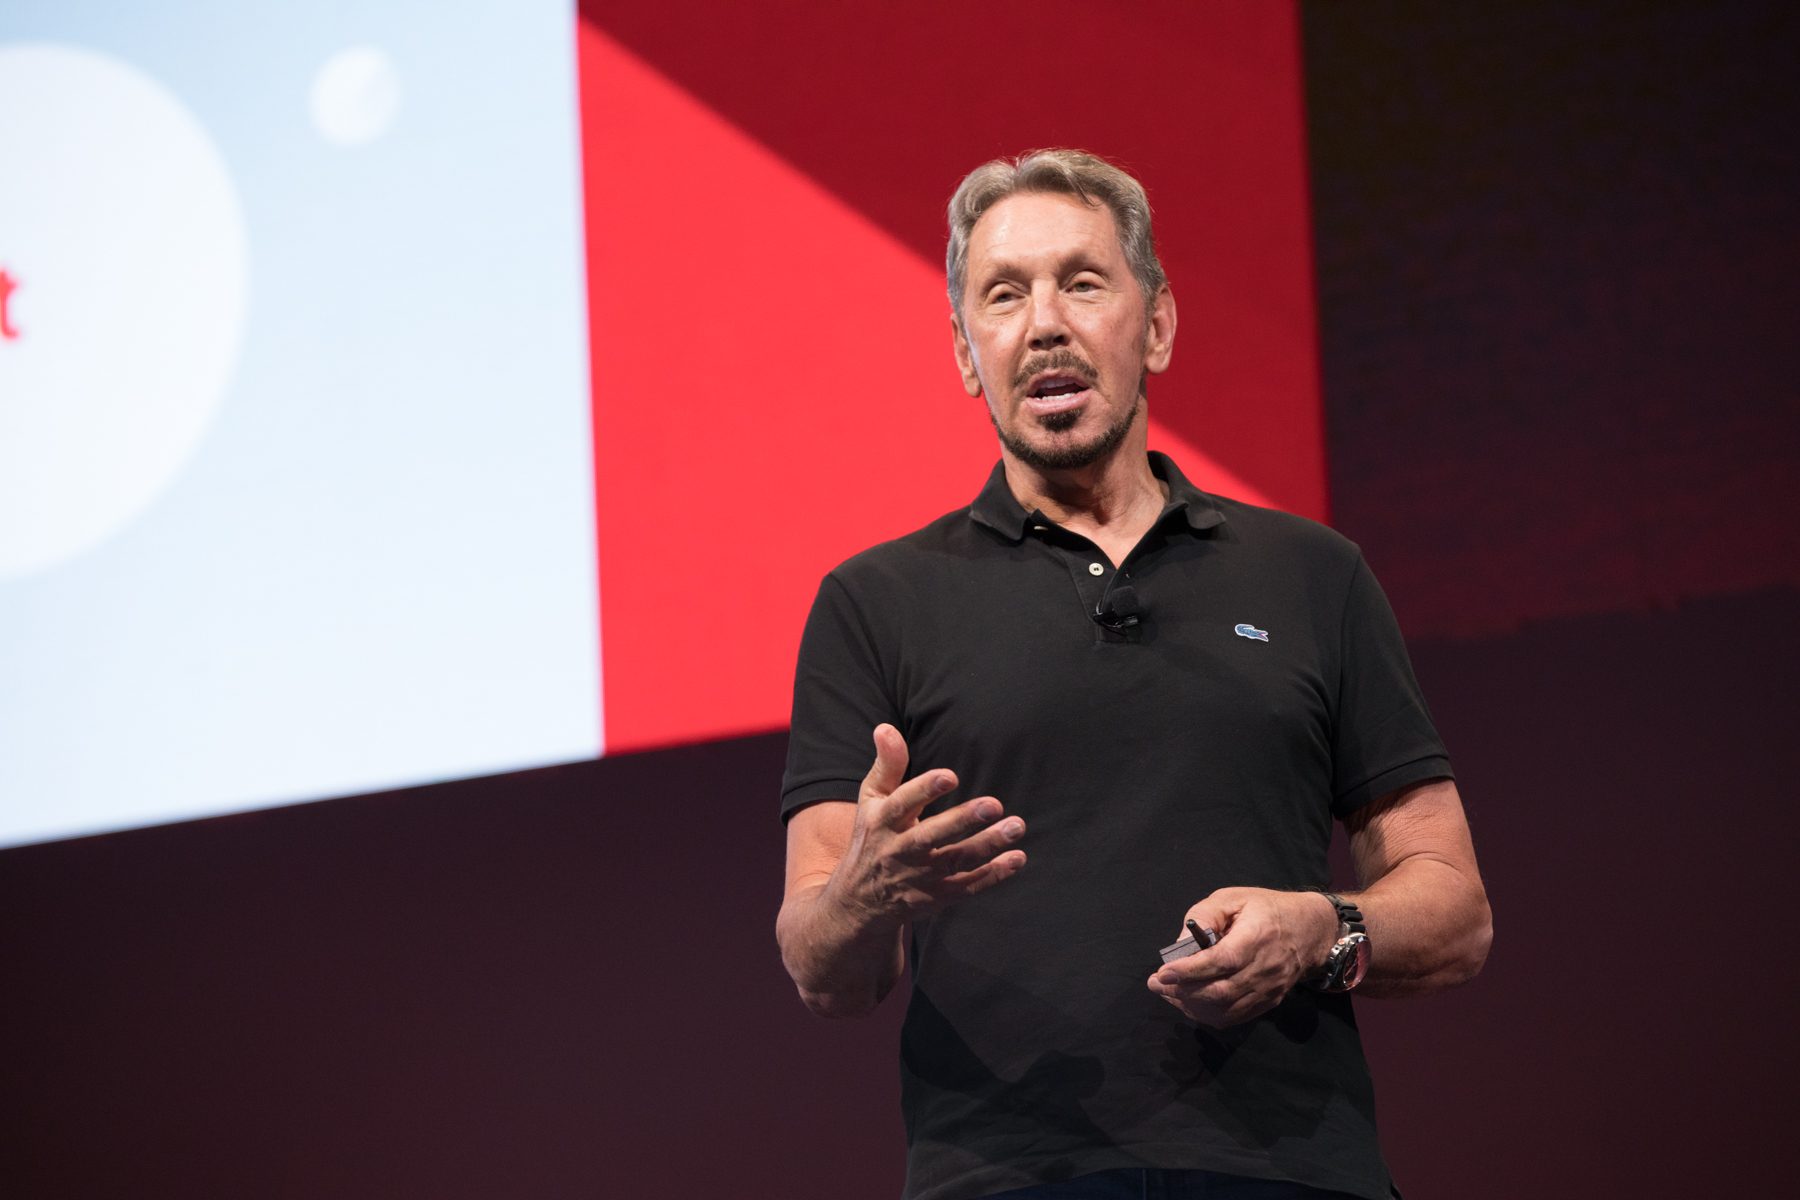 Kosmos welcomes Larry Ellison as an investor to its Davis Cup reform project